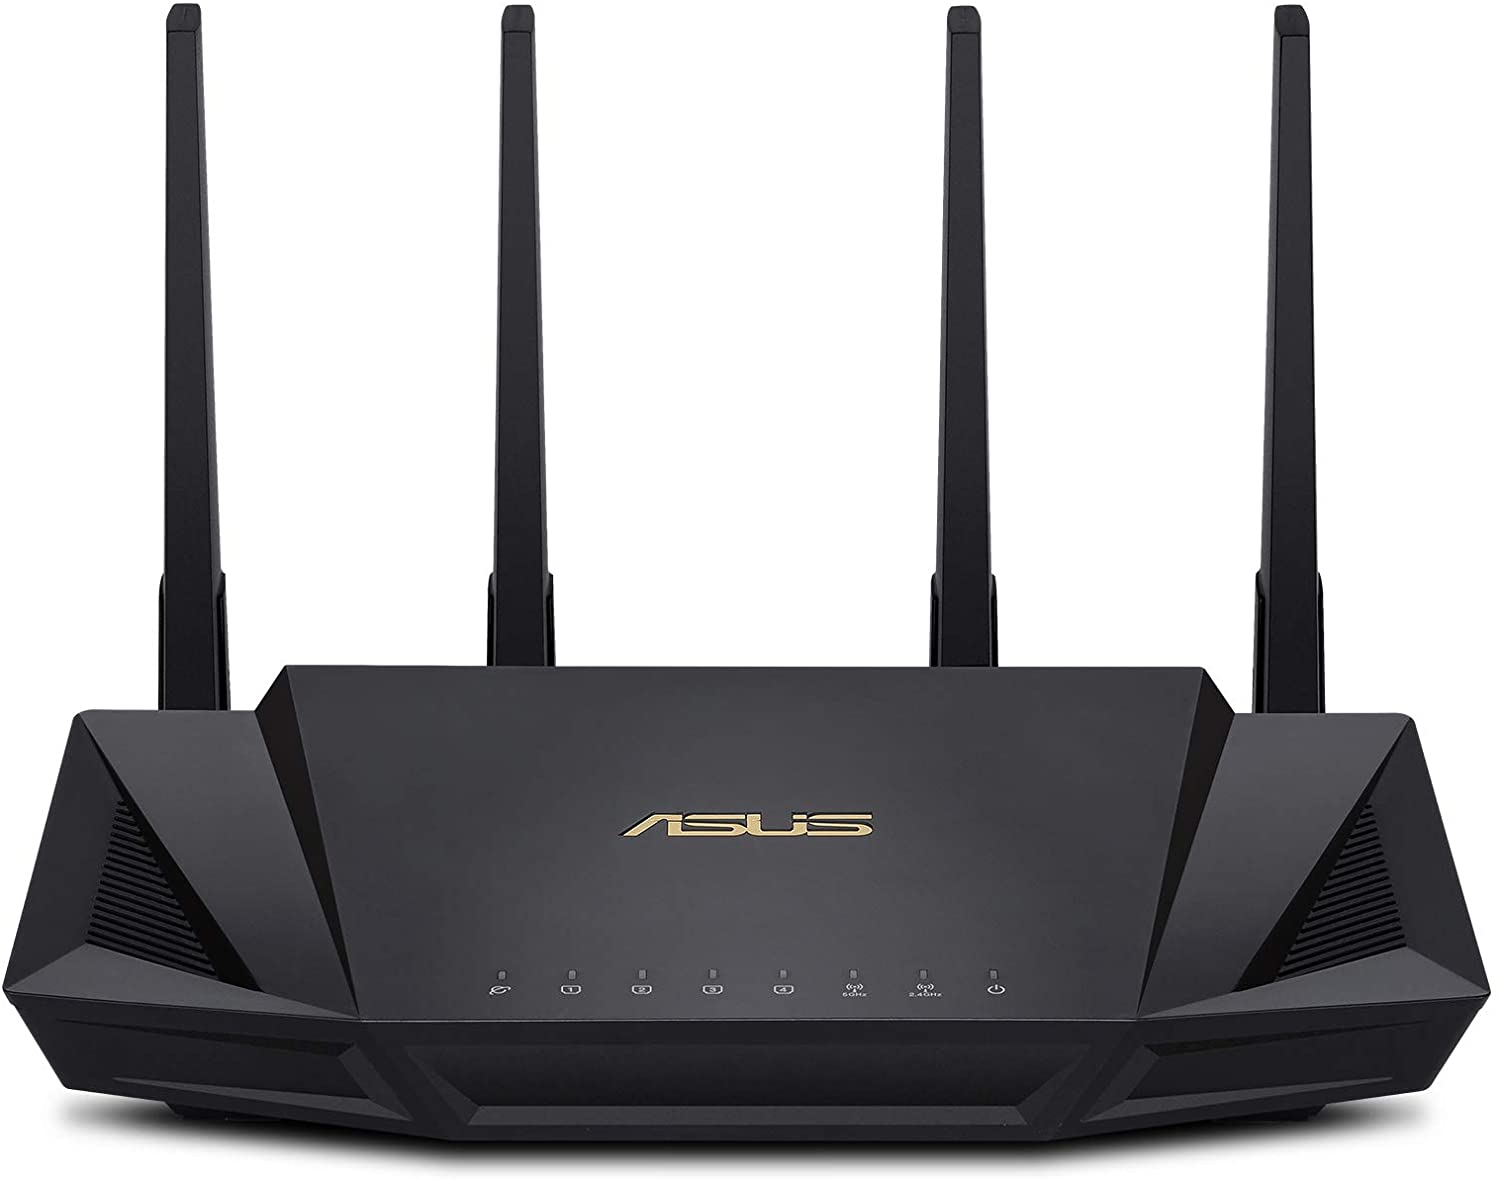 ASUS RT-AX3000 Dual Band WiFi Router